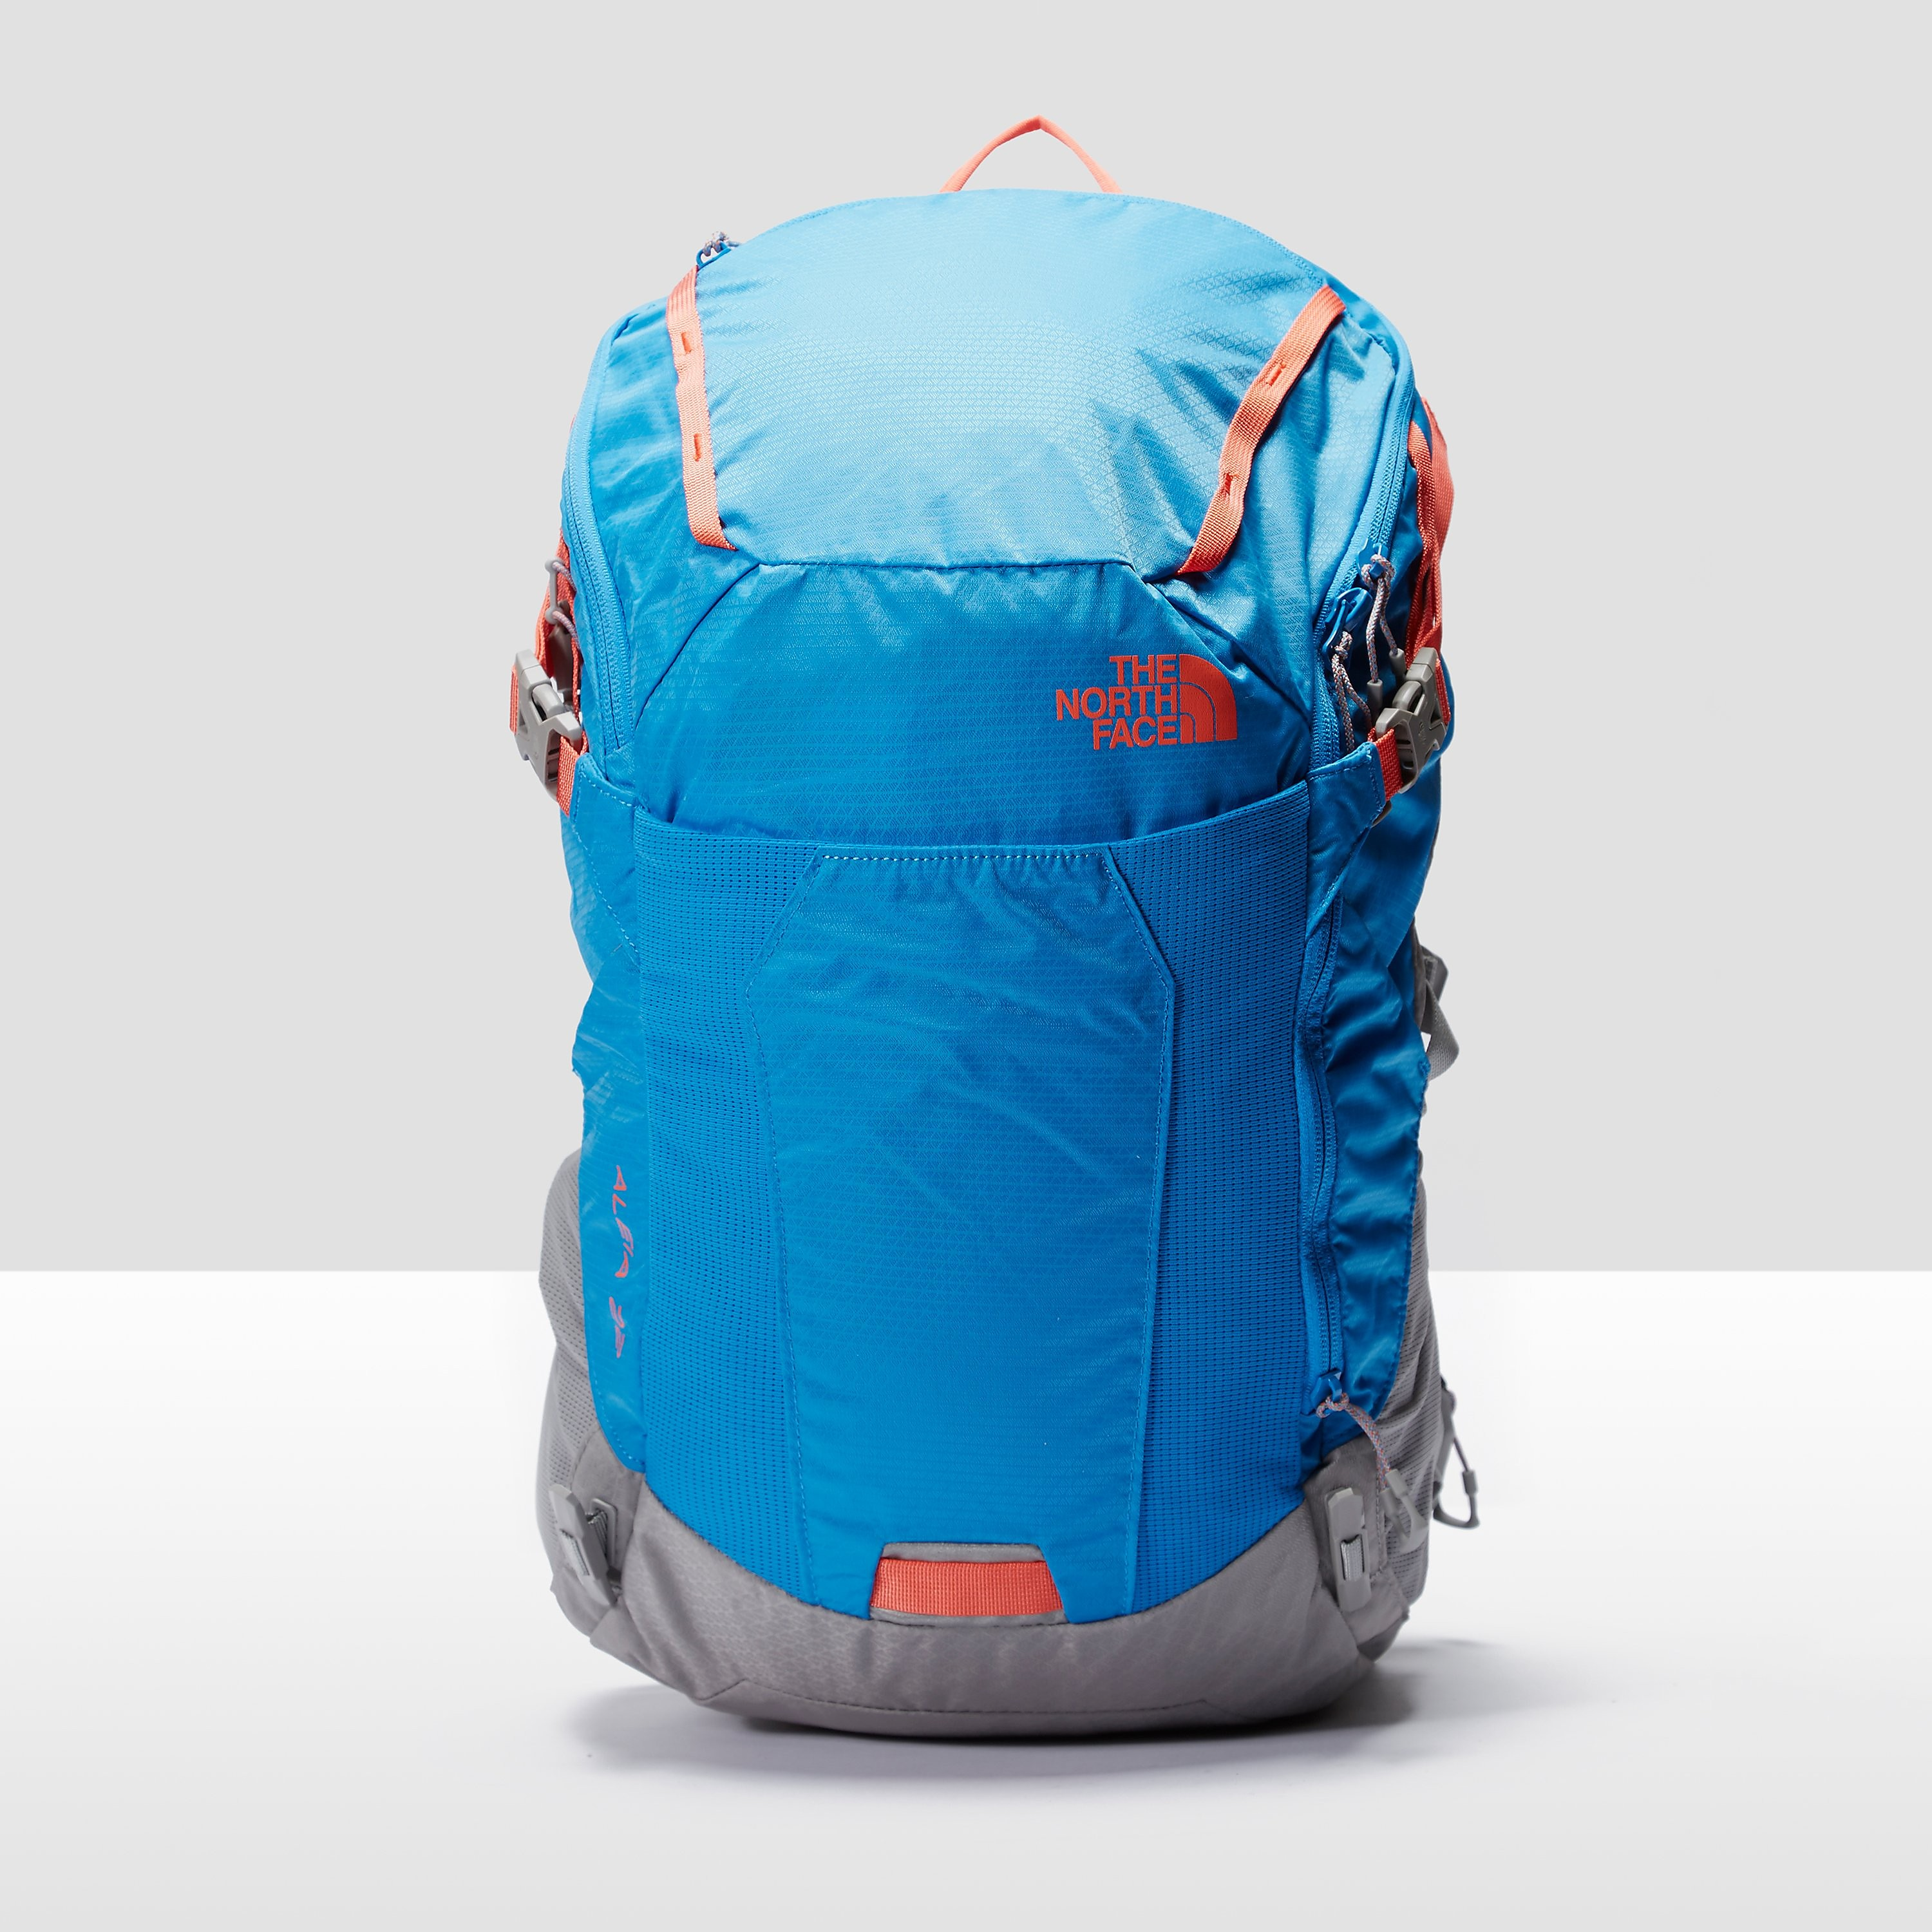 The north face ALEIA 22 RUCKSACK